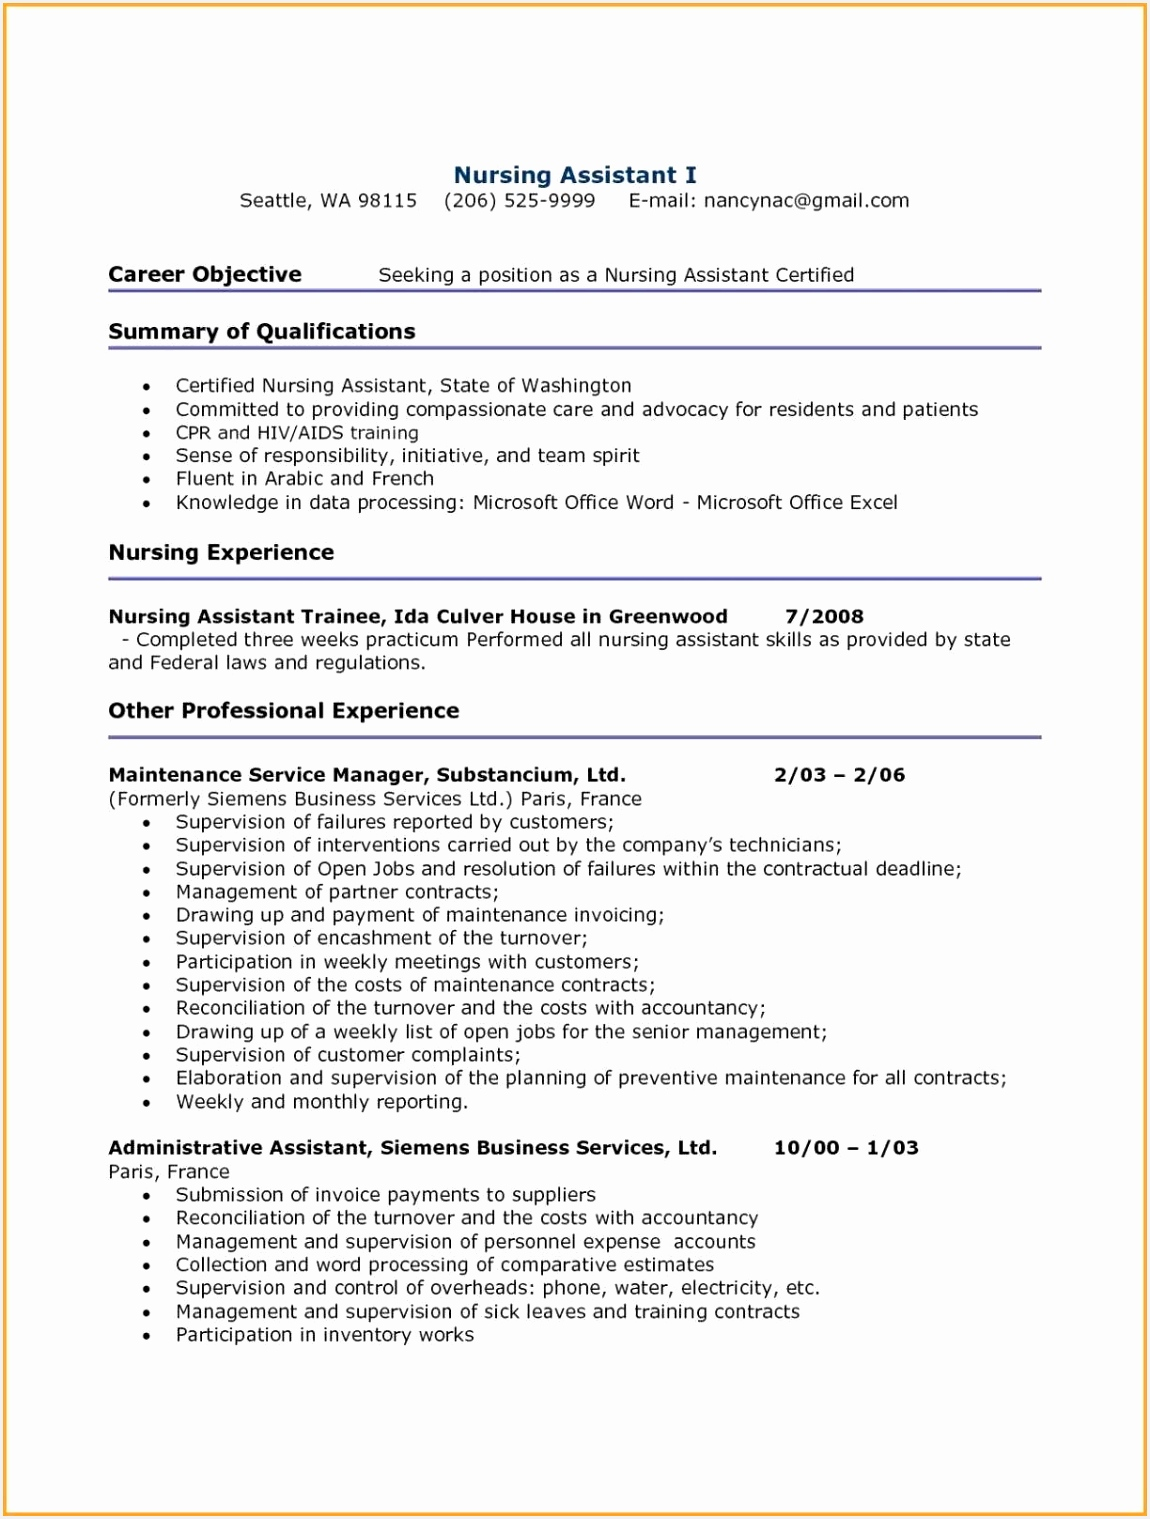 Microsoft Trainer Sample Resume Rduqf Awesome Cover Letter Email format Lovely Email Cover Letters New Resume Of Microsoft Trainer Sample Resume Qxqav Fresh Sample Resume for Ca Articleship Training Free Template Design